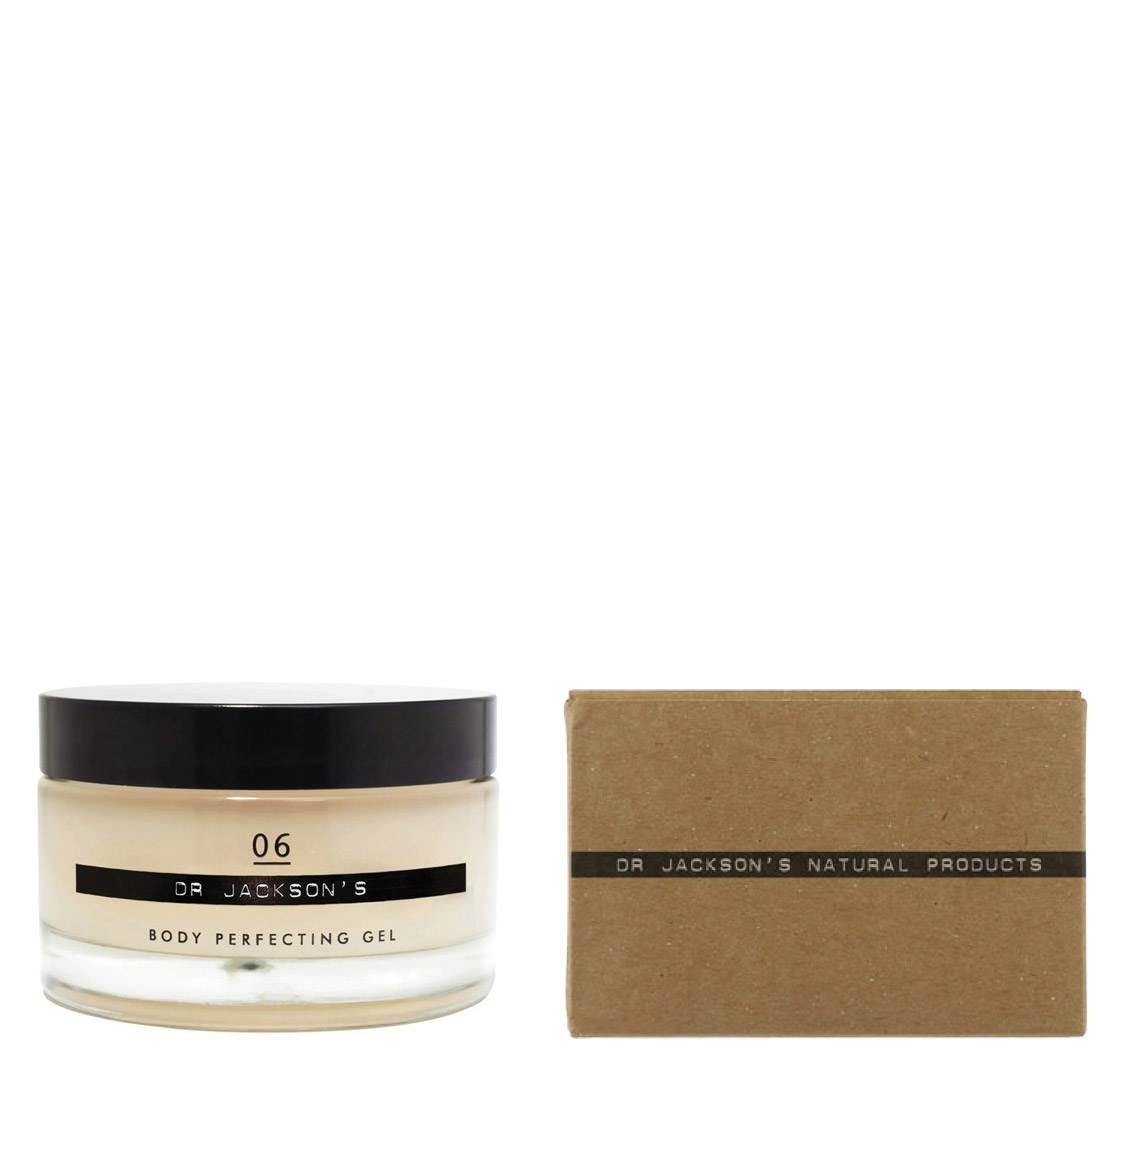 Dr Jacksons 06 Body Perfecting Gel 200ml